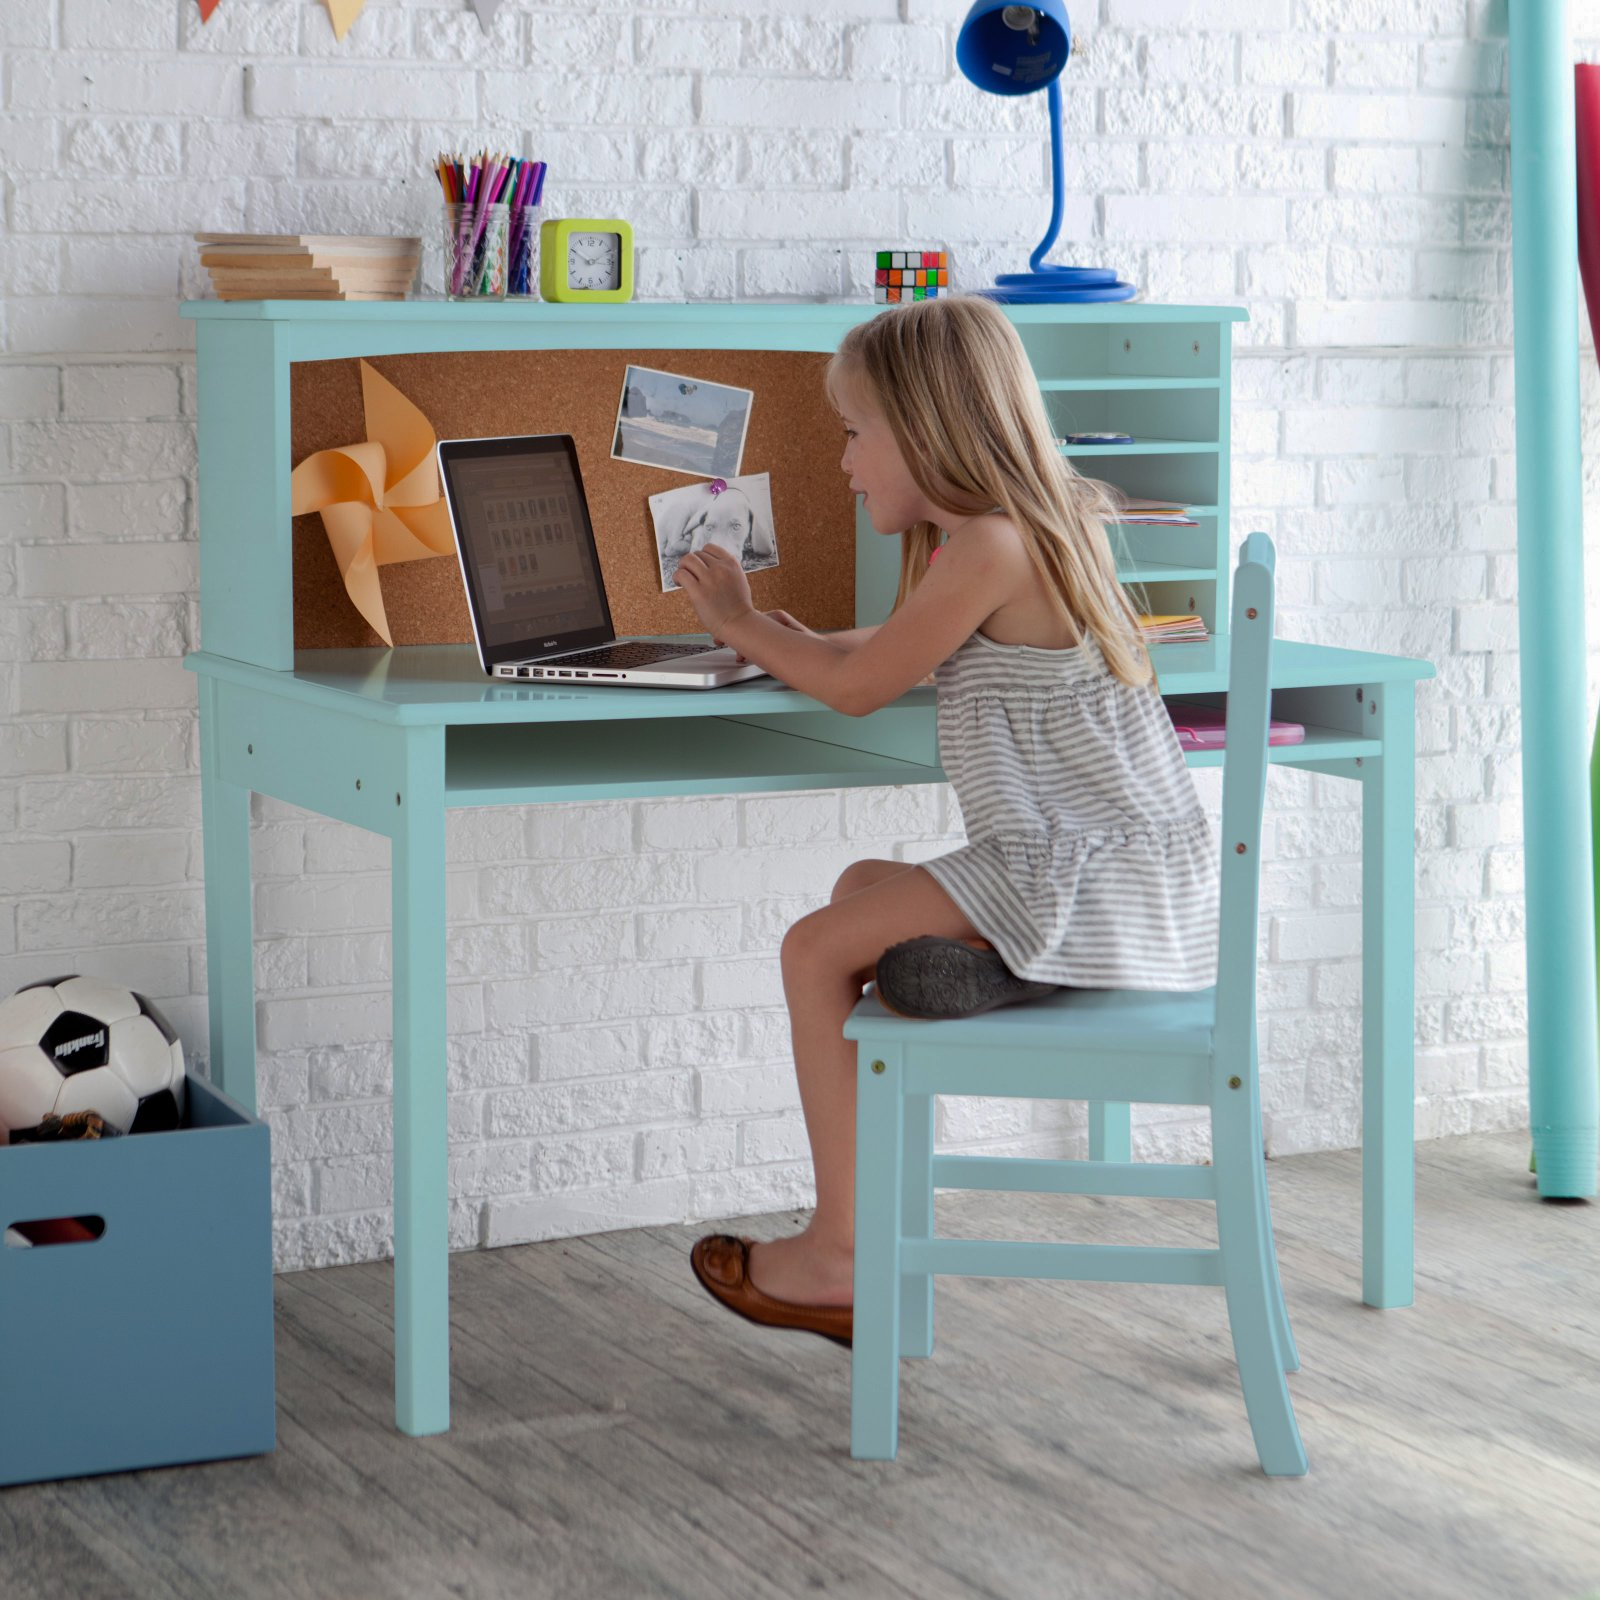 Guidecraft Media Desk & Chair Set - Teal